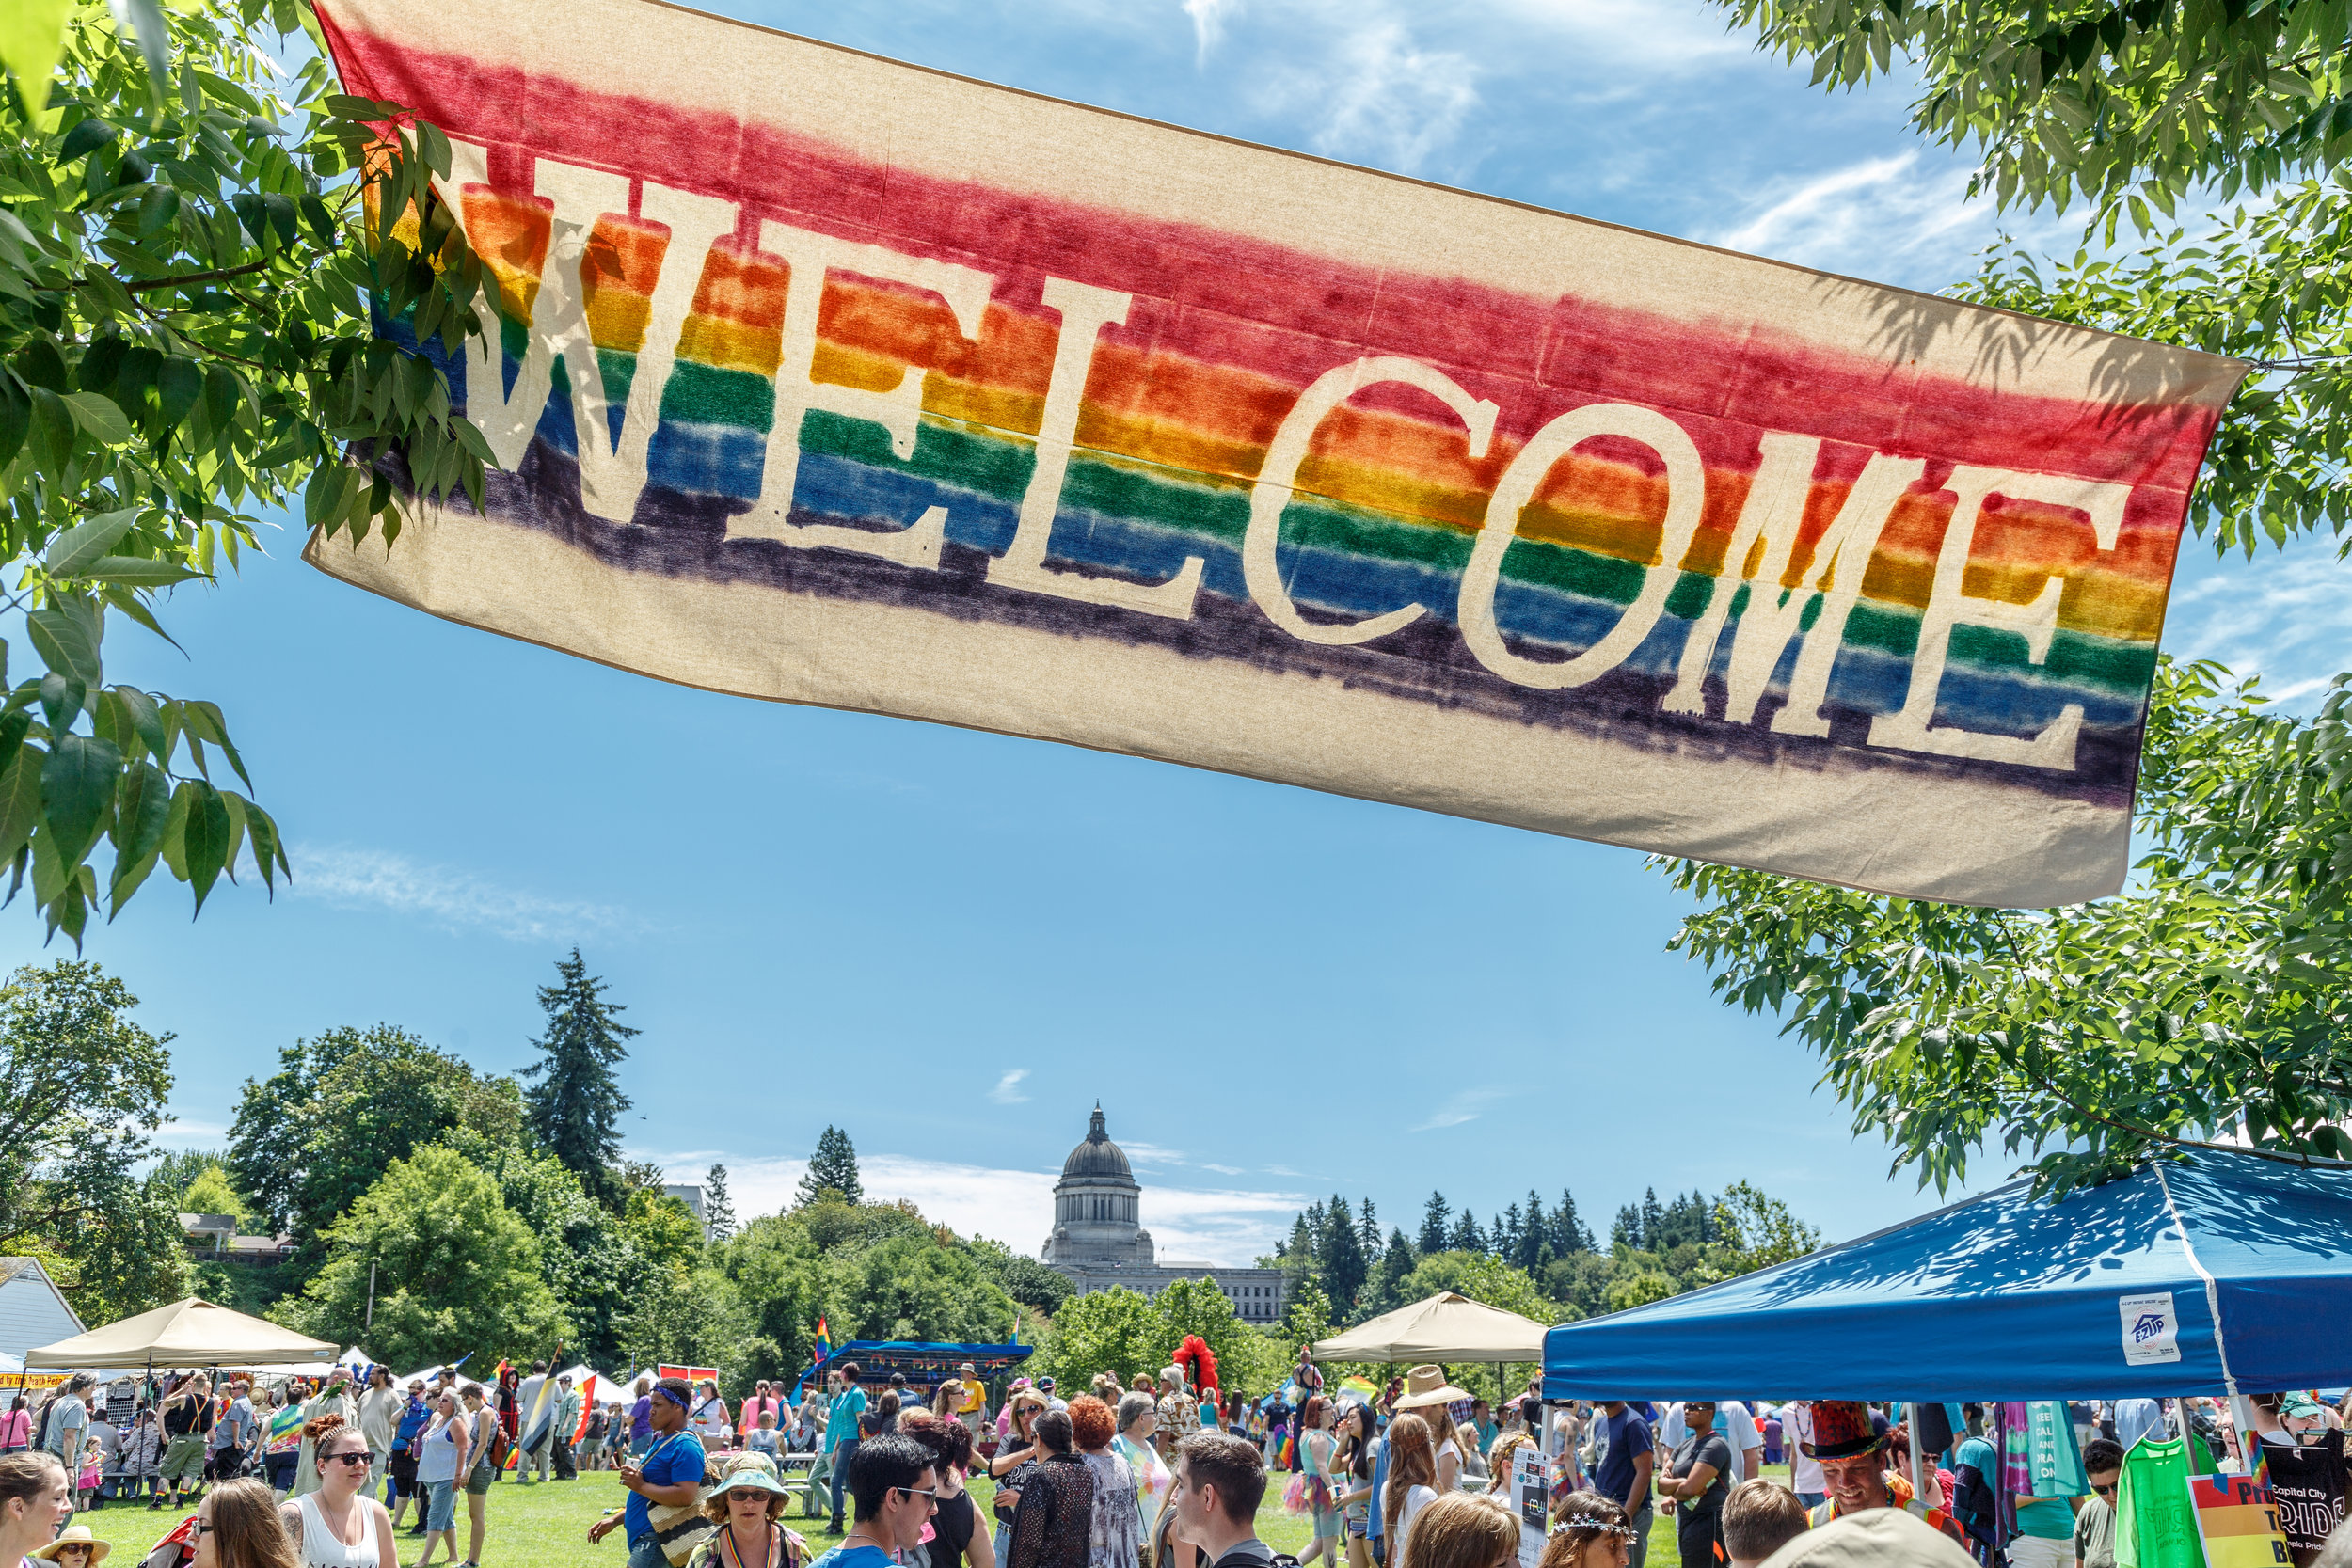 Celebrate pride in the shadow of the Capitol Building in Olympia, Washington.